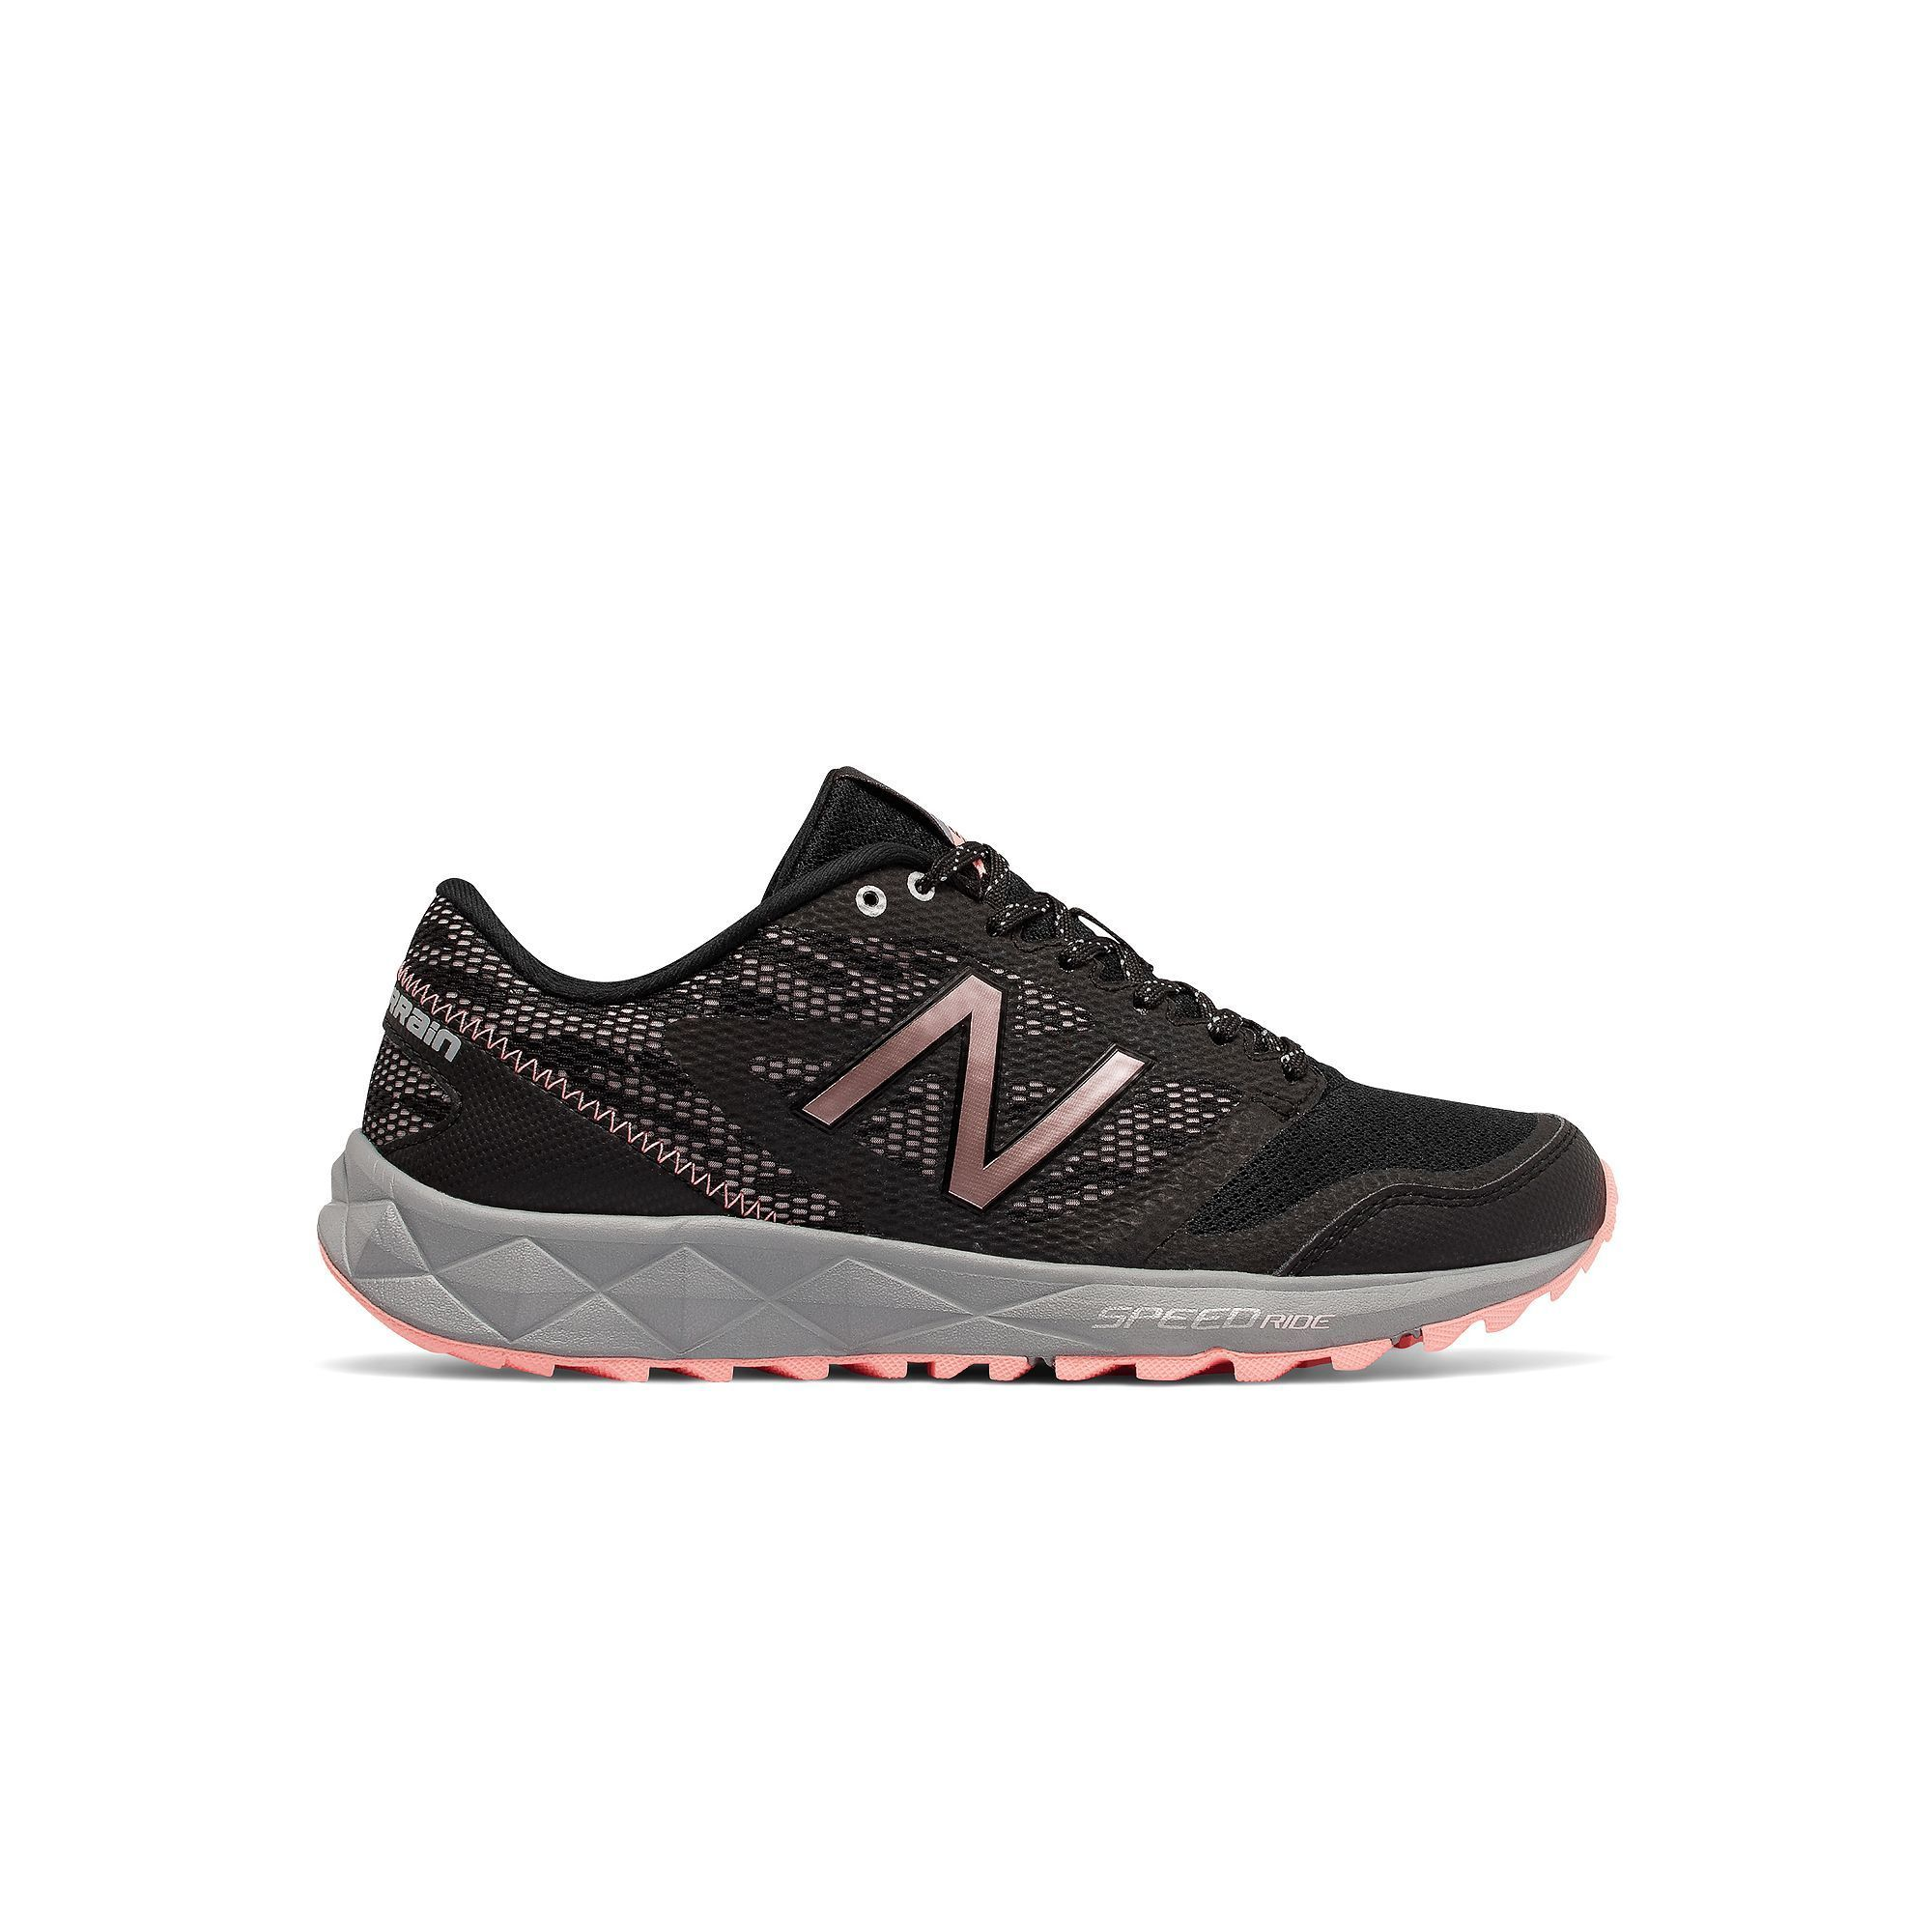 Women's  Shoe Shape Up Toning Fitness Walking New Balance Black Running Size 6.5